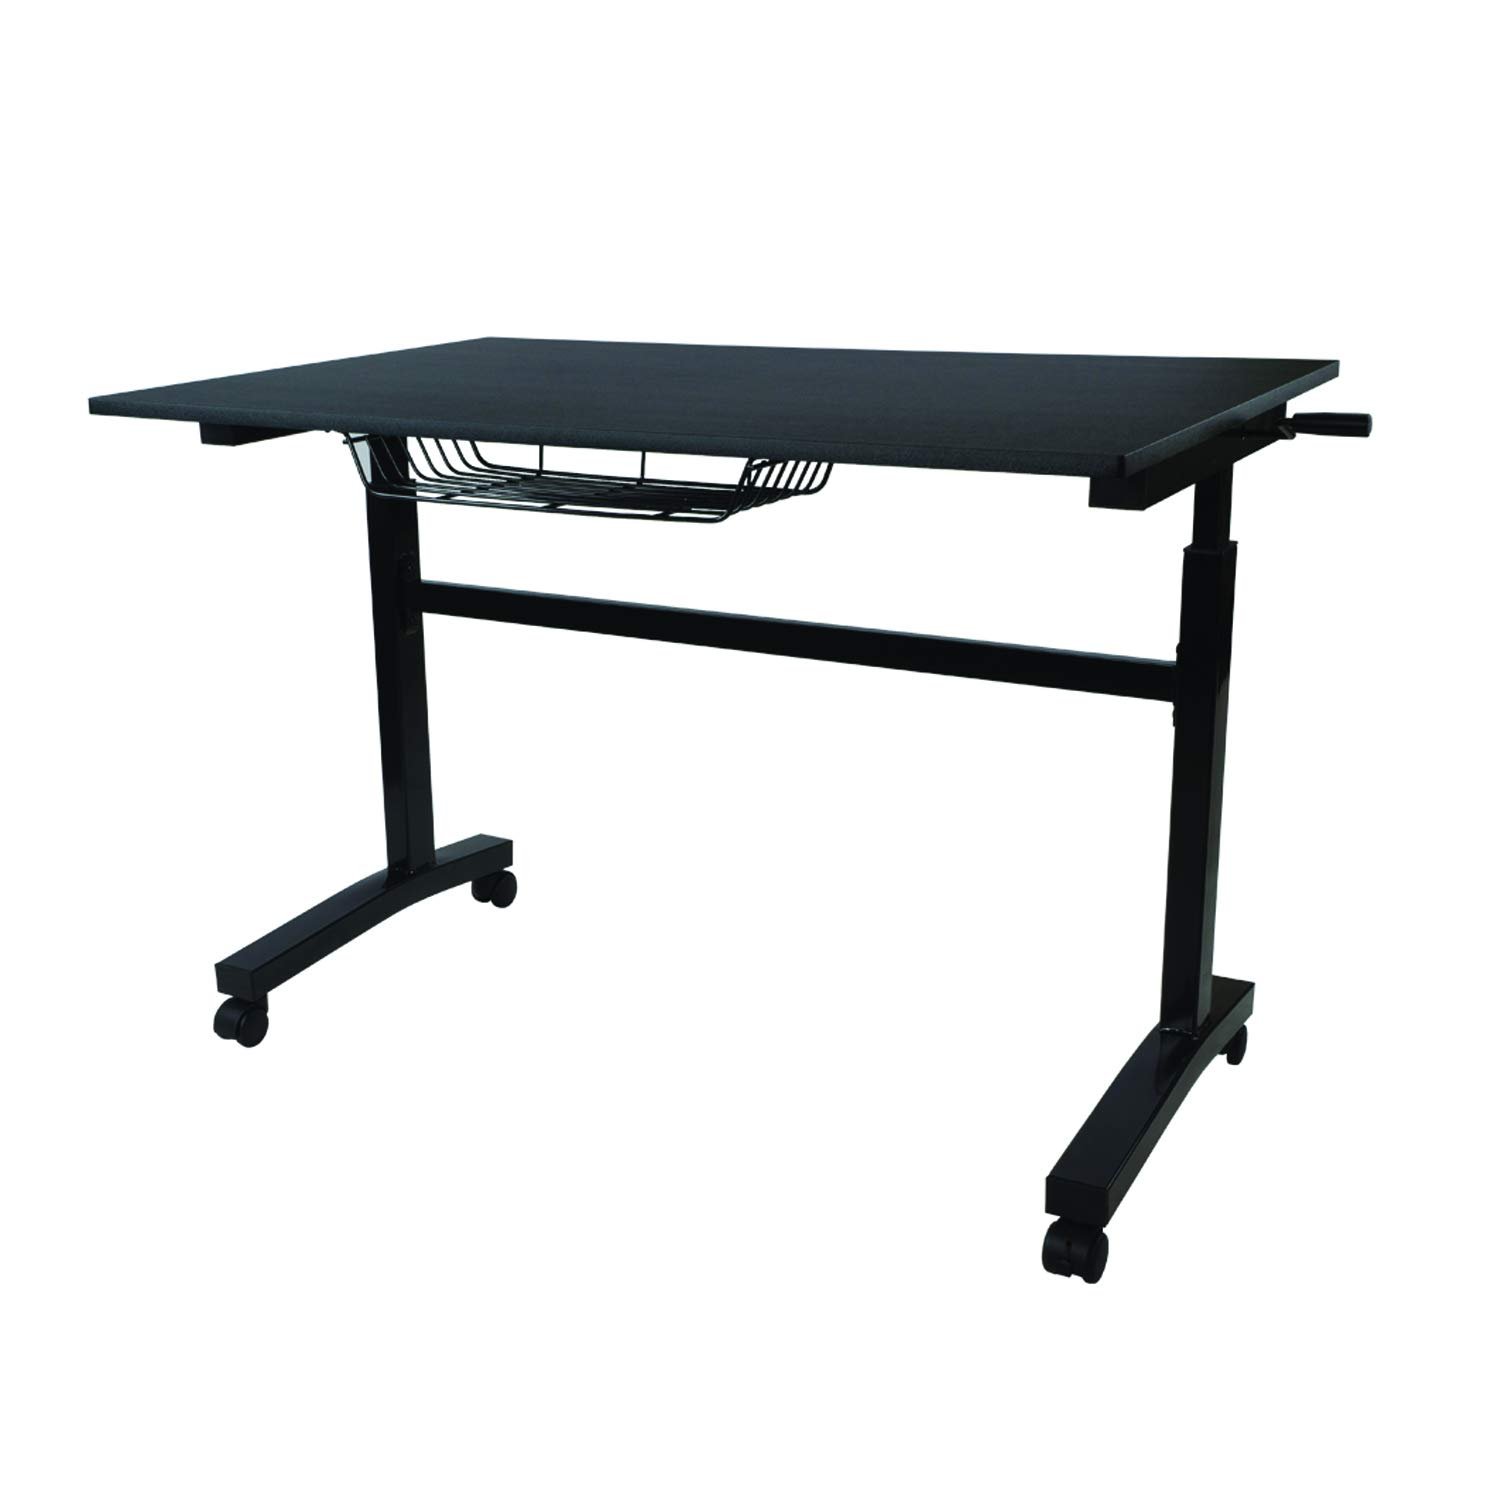 Atlantic Crank Adjustable Height Desk - Sit or Stand at This Large Workspace, Heavy Gauge Steel Frame (Black, with Casters)